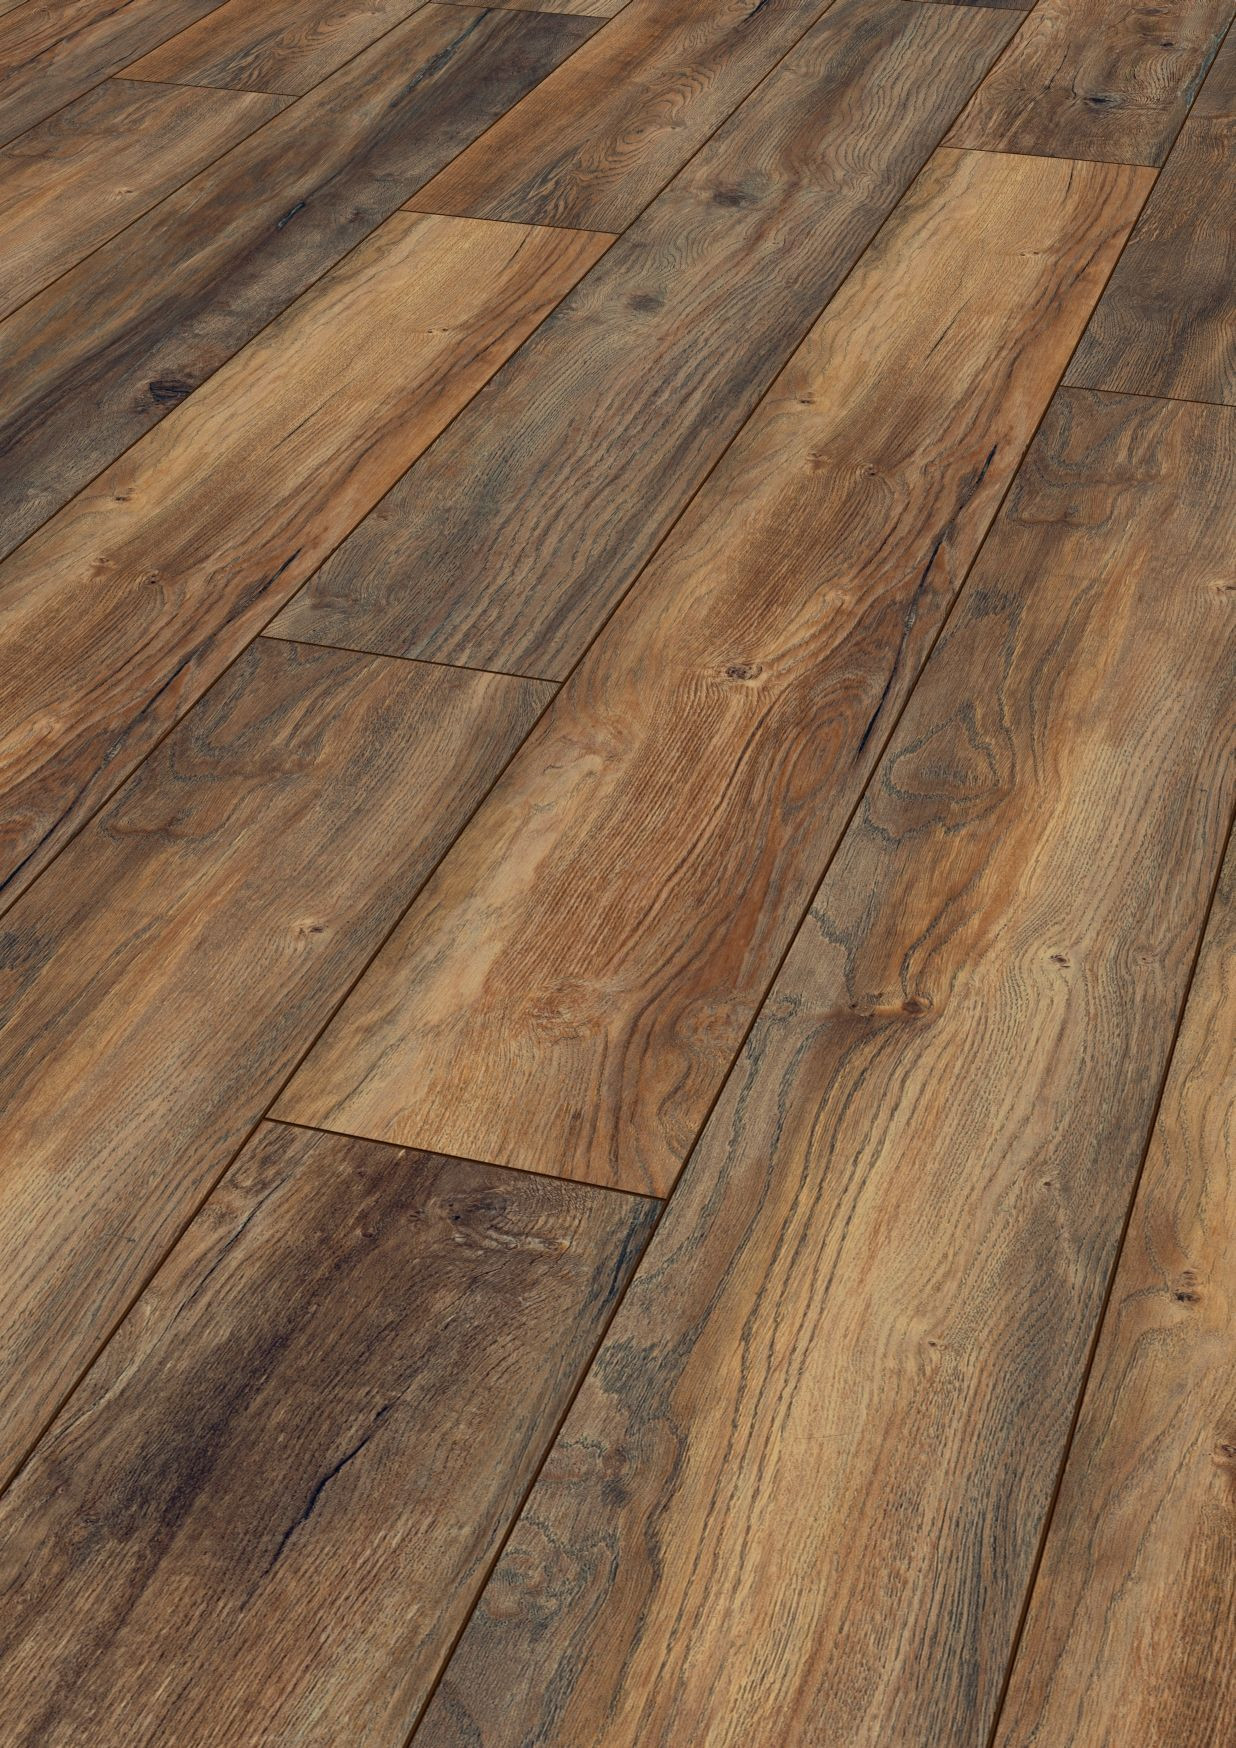 Paw Hardwood Floors Of Laura Allen Laurajeanallen On Pinterest Inside 0d71873cb531b49f85d360a1804947cb